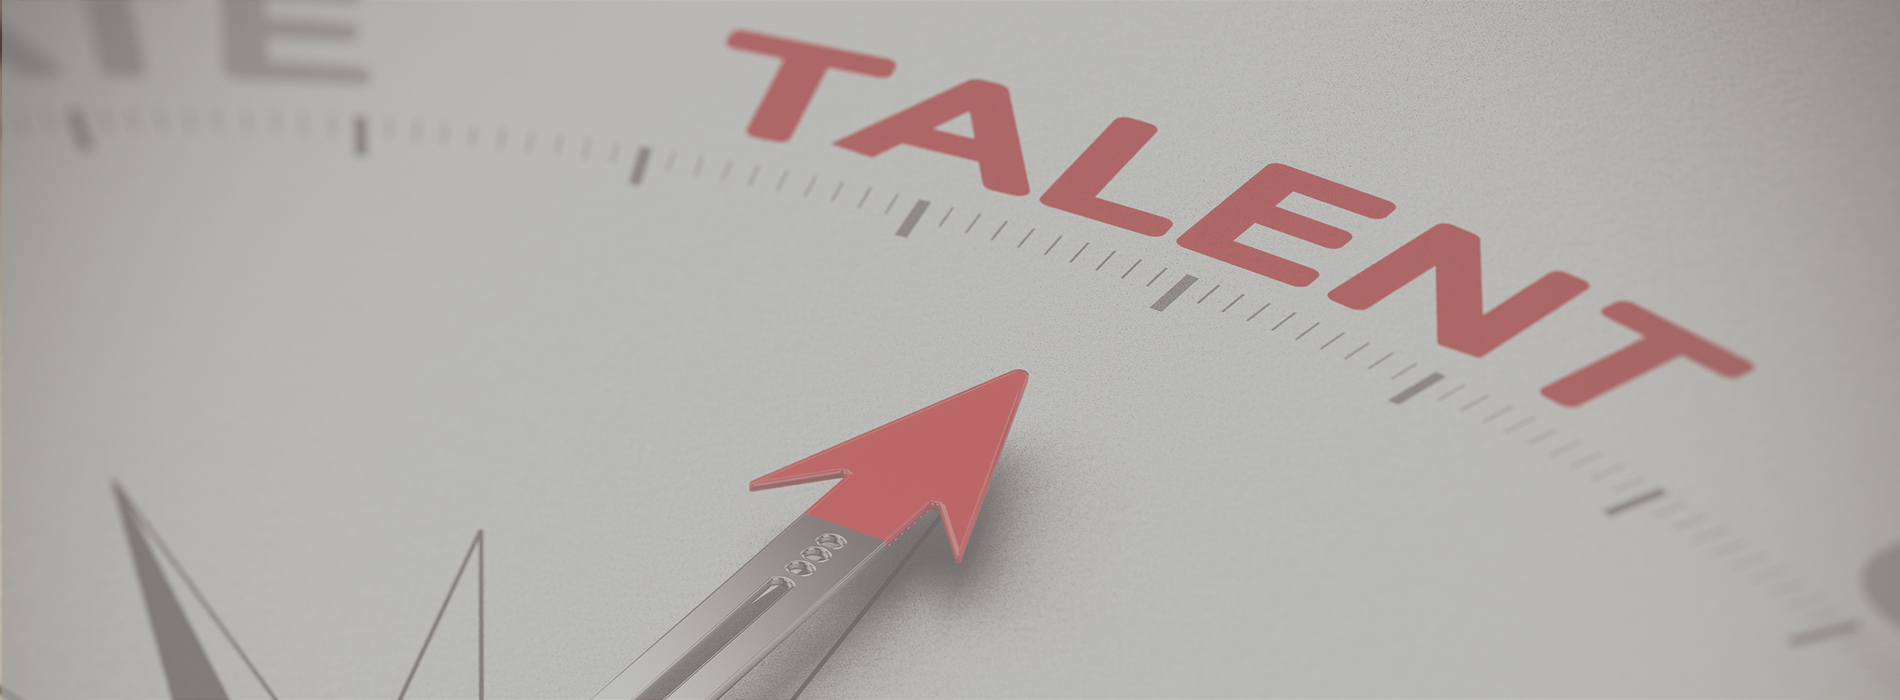 Talent - Advalco Anspruch Recruiting Personalberatung